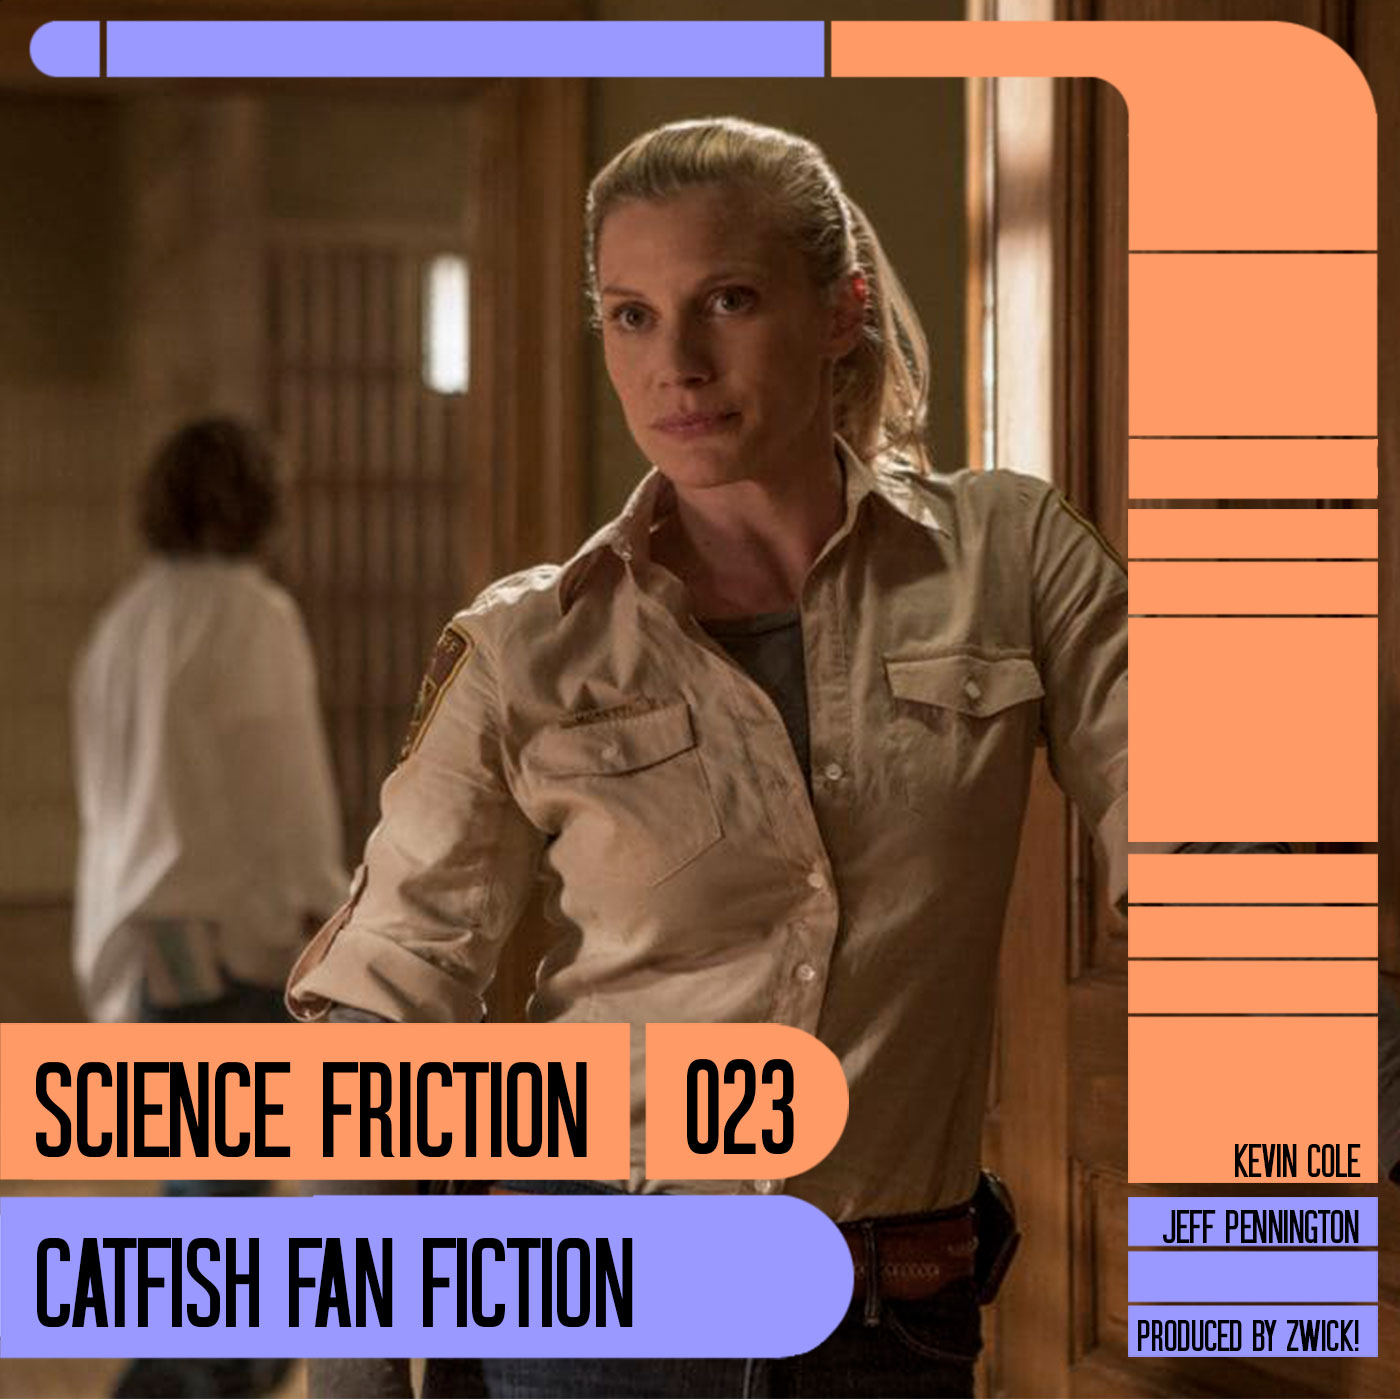 Science Friction 023: Catfish Fan Fiction